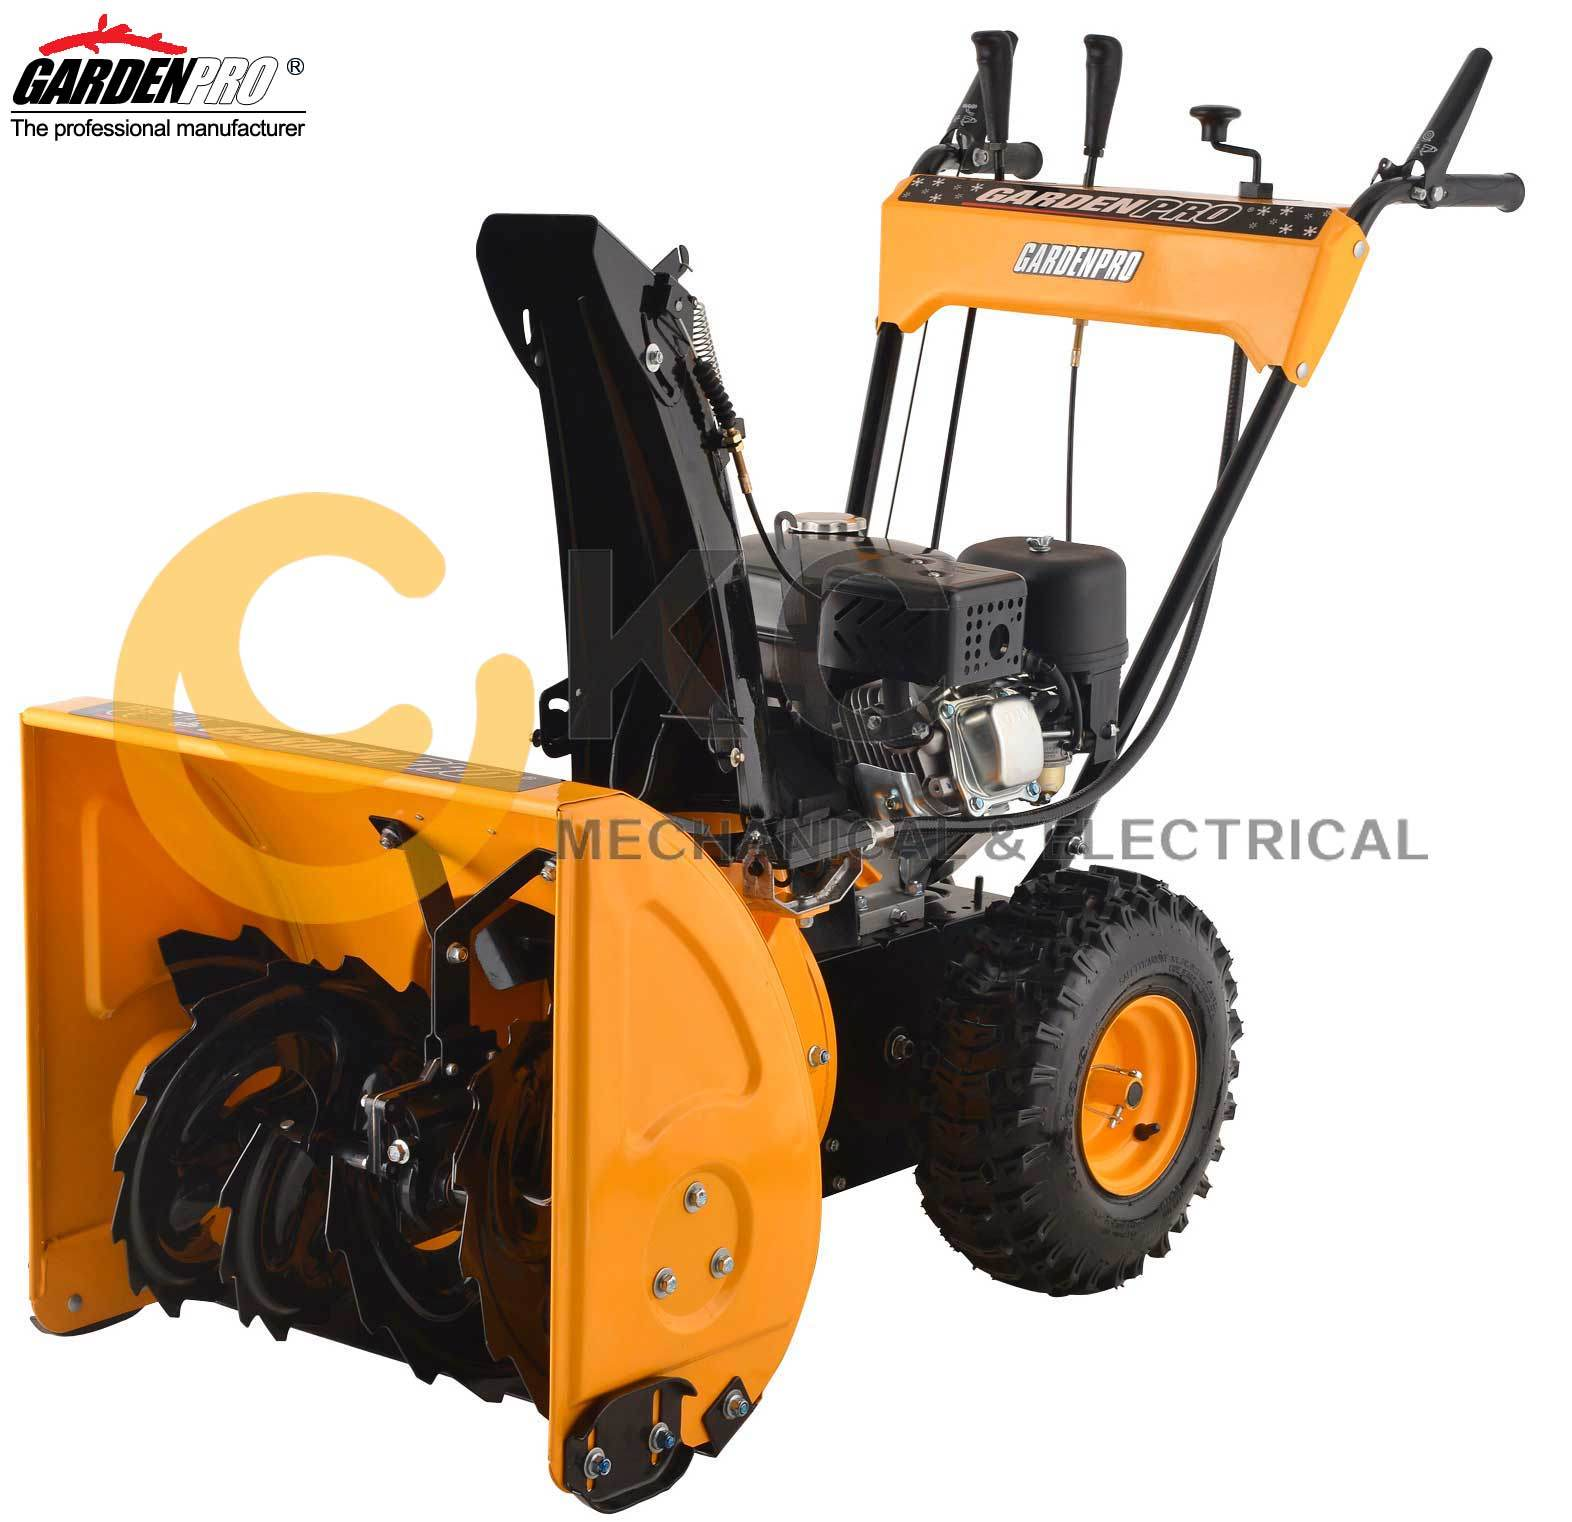 163cc CE&GS Certified Snow Thrower (KC521S-F)